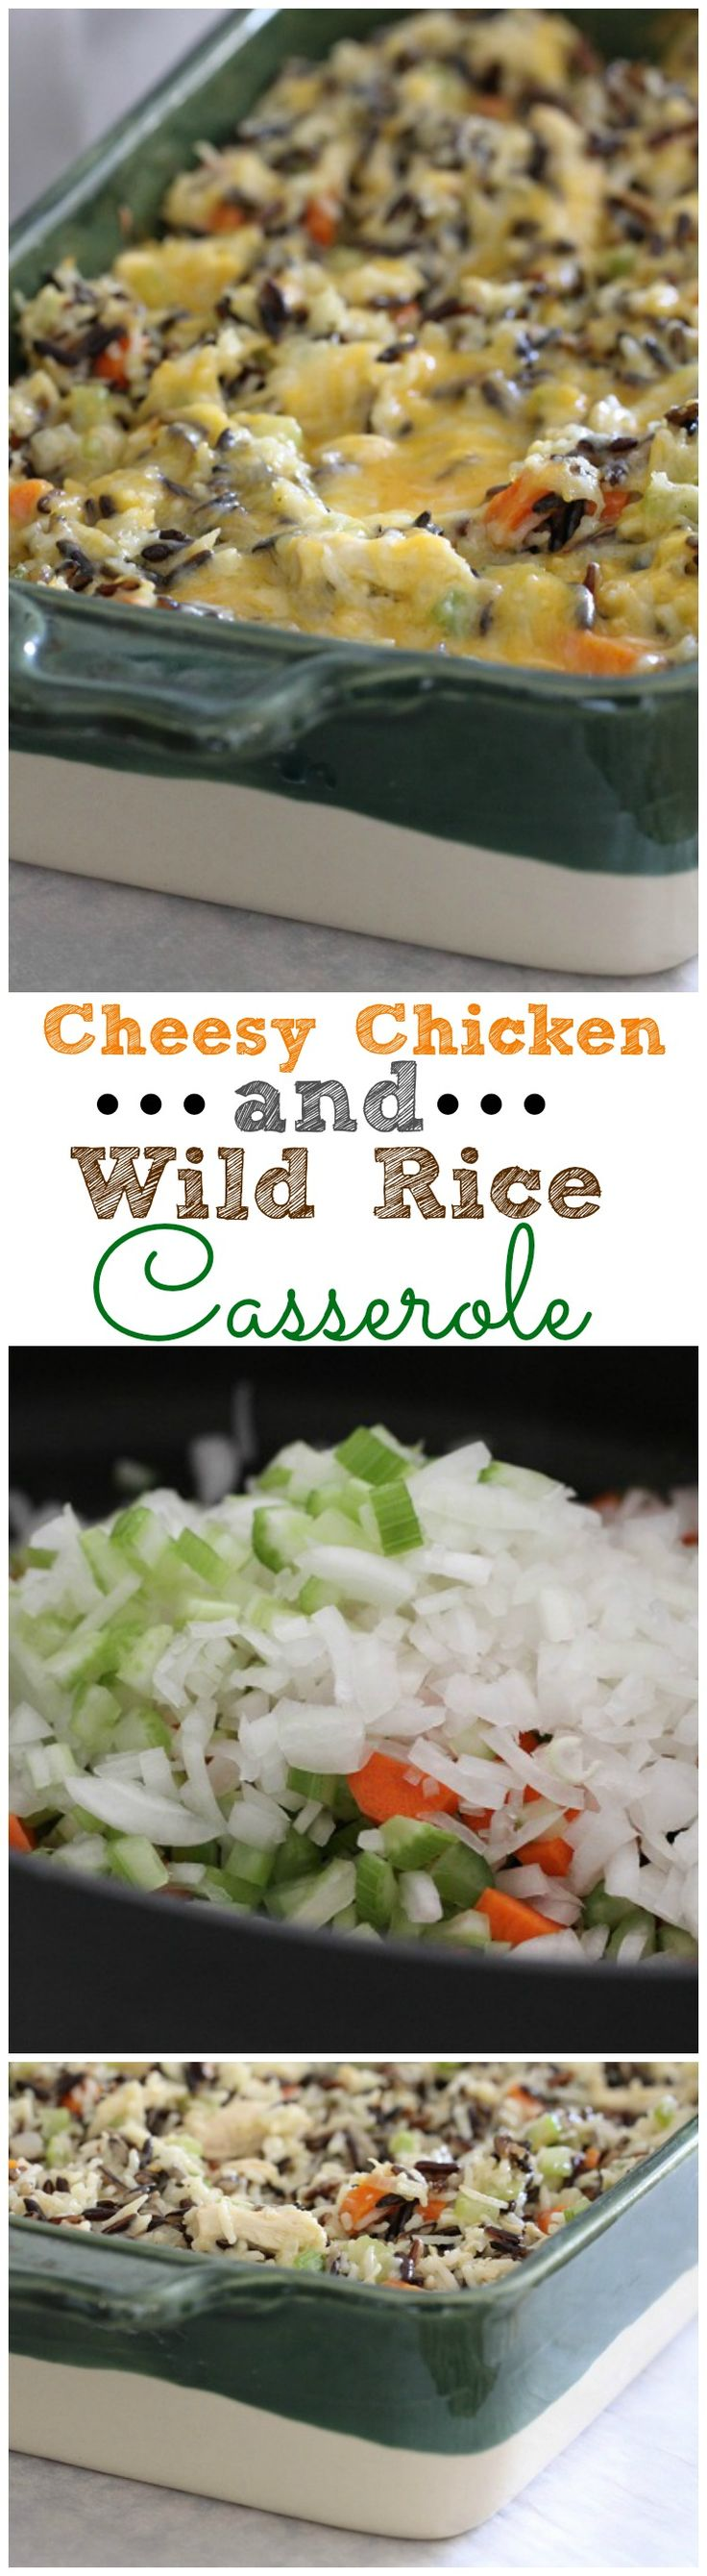 Cheesy Chicken and Wild Rice Casserole.  Great freezer meal to package up for friends in need of dinner!  #chicken #dinner